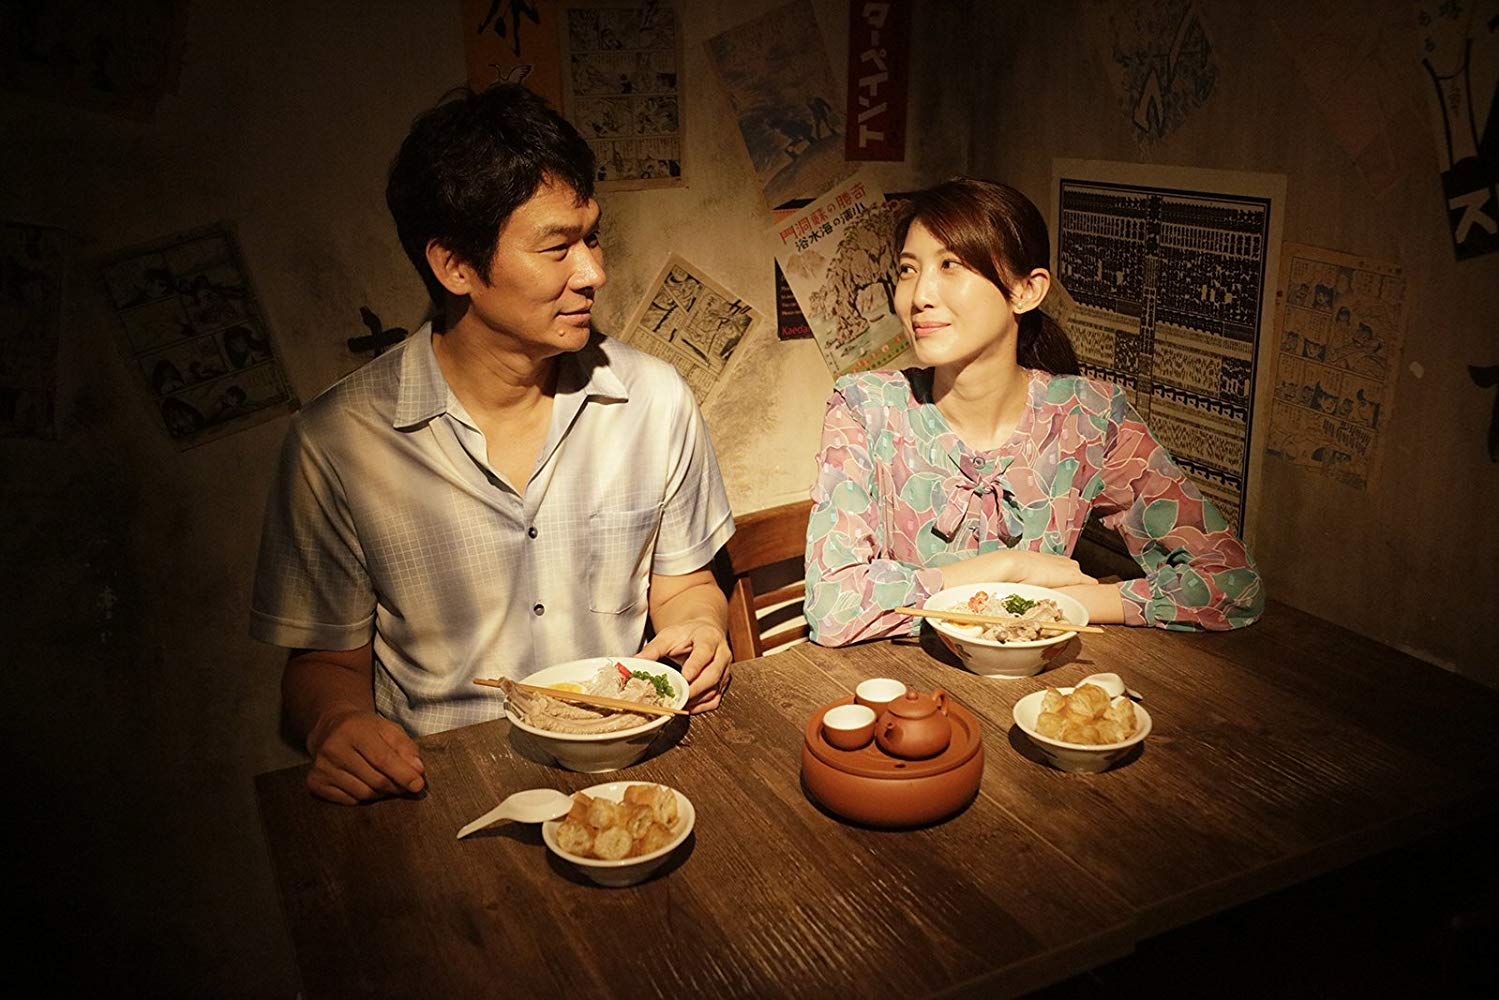 Ramen Shop - A young man who is curious about his deceased parents' past takes a food journey to Singapore where he uncovers more than just delicious meals.(Drama: 1hr 29min)Film sponsor - Eat ADK Restaurant Week